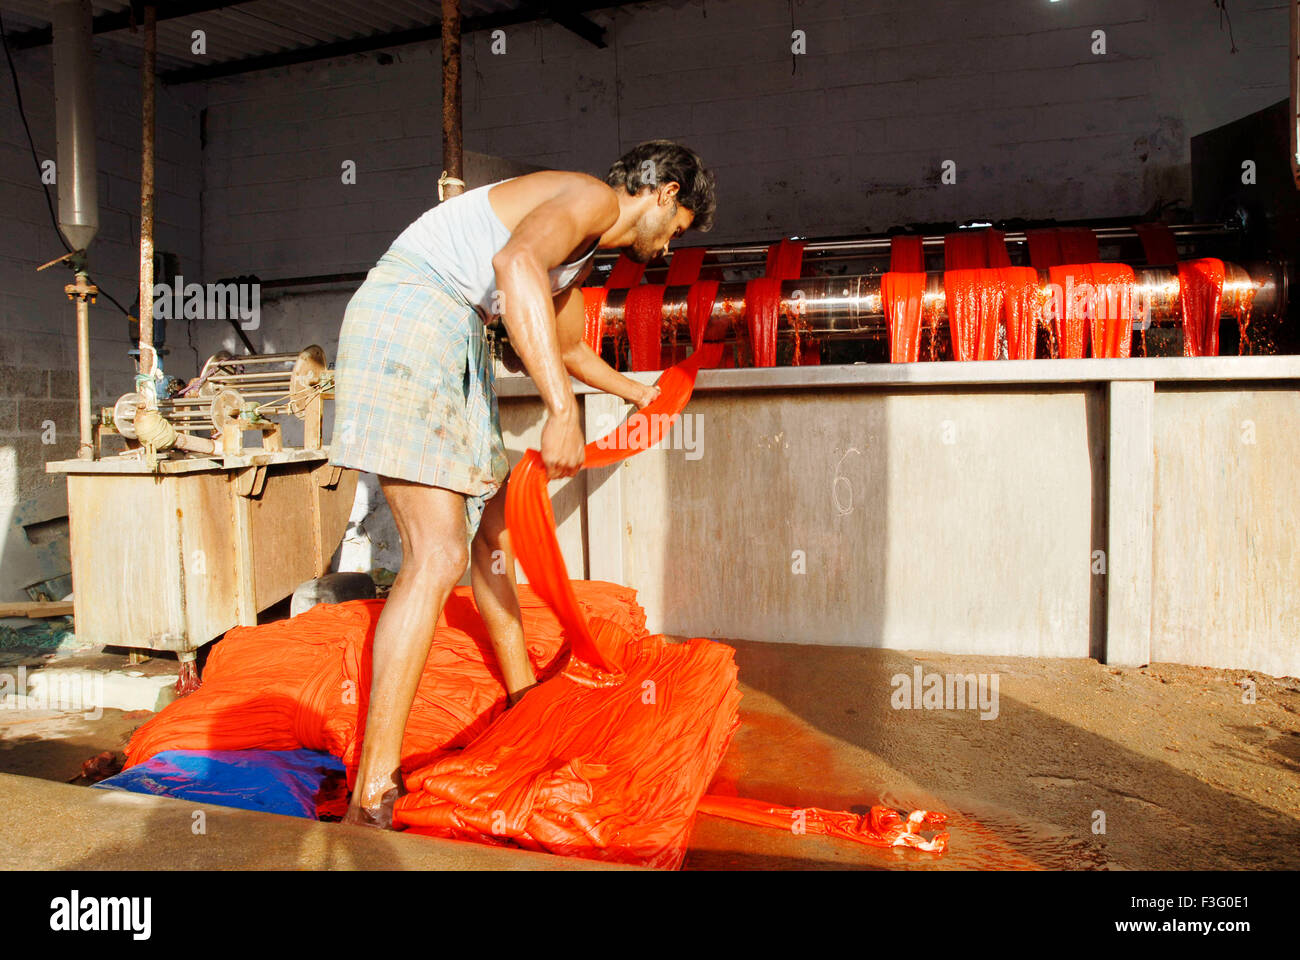 Fabric dyeing ; winch dyeing is a old method ; garment industry ; Tirupur ; Tamil Nadu ; India - Stock Image